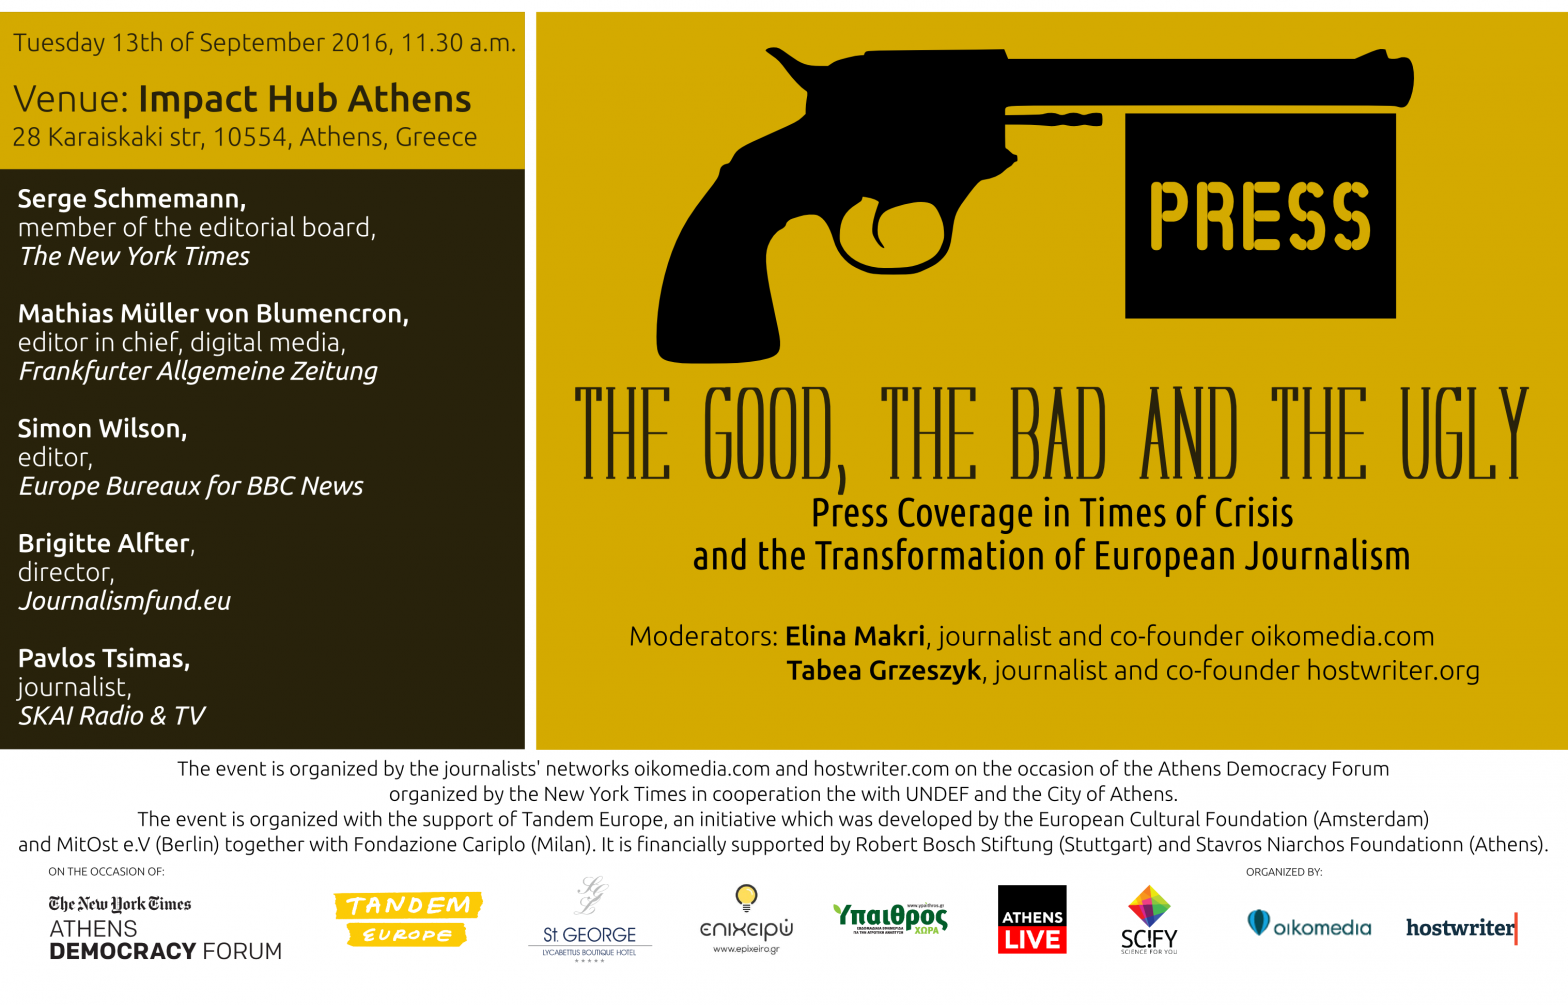 The Good, The Bad And The Ugly: Press Coverage in Times of Crisis and the Transformation of European Journalism